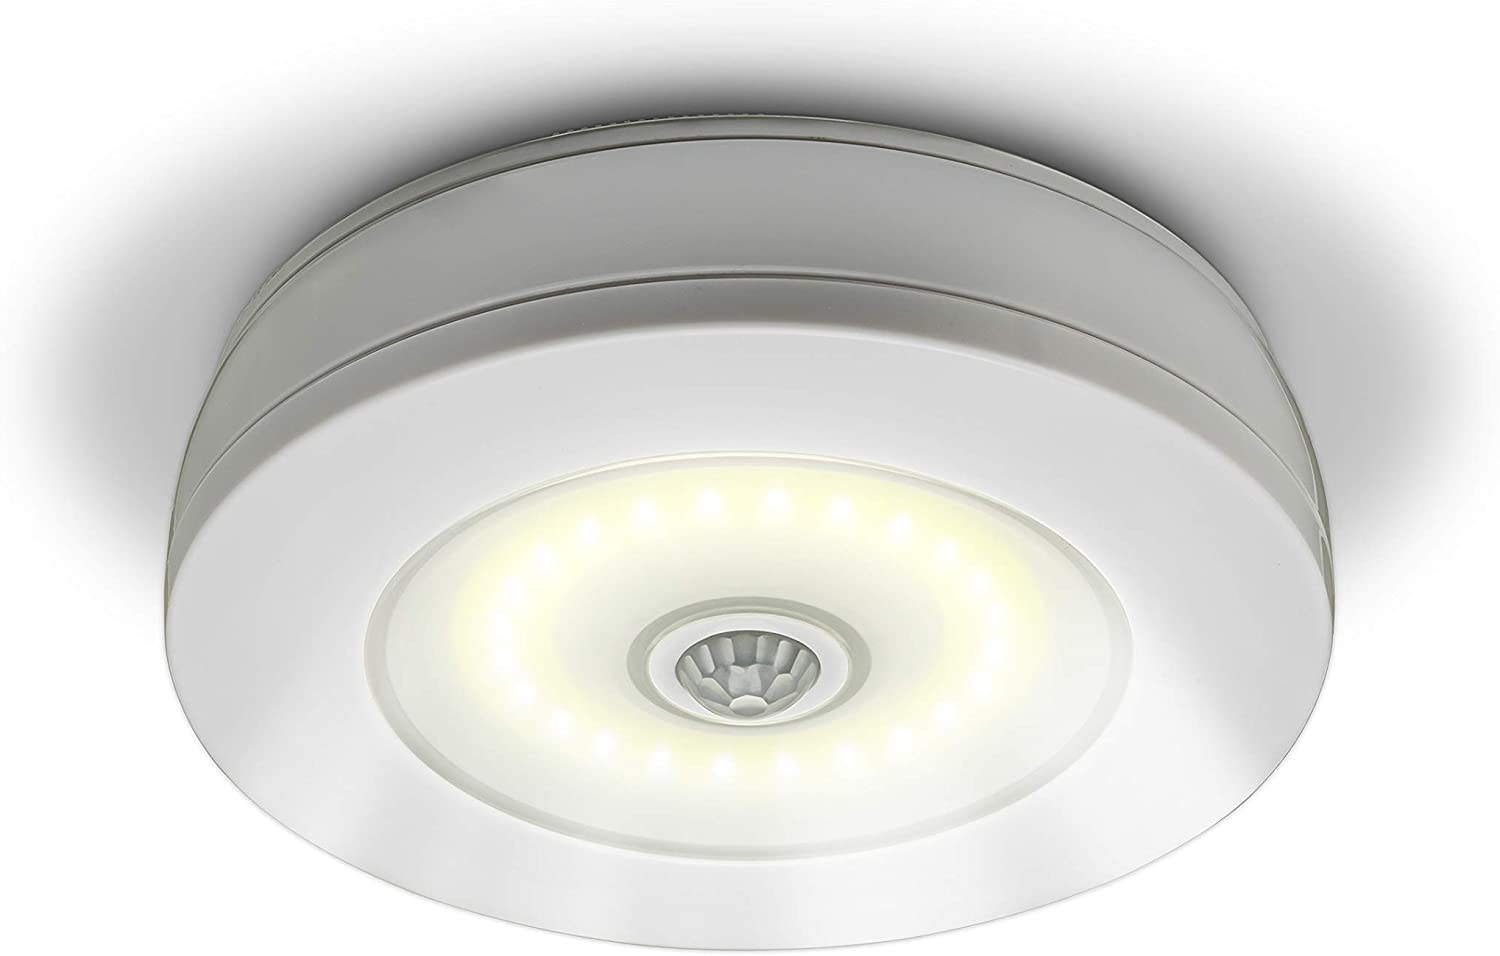 Sensor Brite Overlite Wireless Motion Activated Ceiling Wall Led Light Stick Anywhere Battery Operated Overhead Light Close To Ceiling Lights Amazon Canada